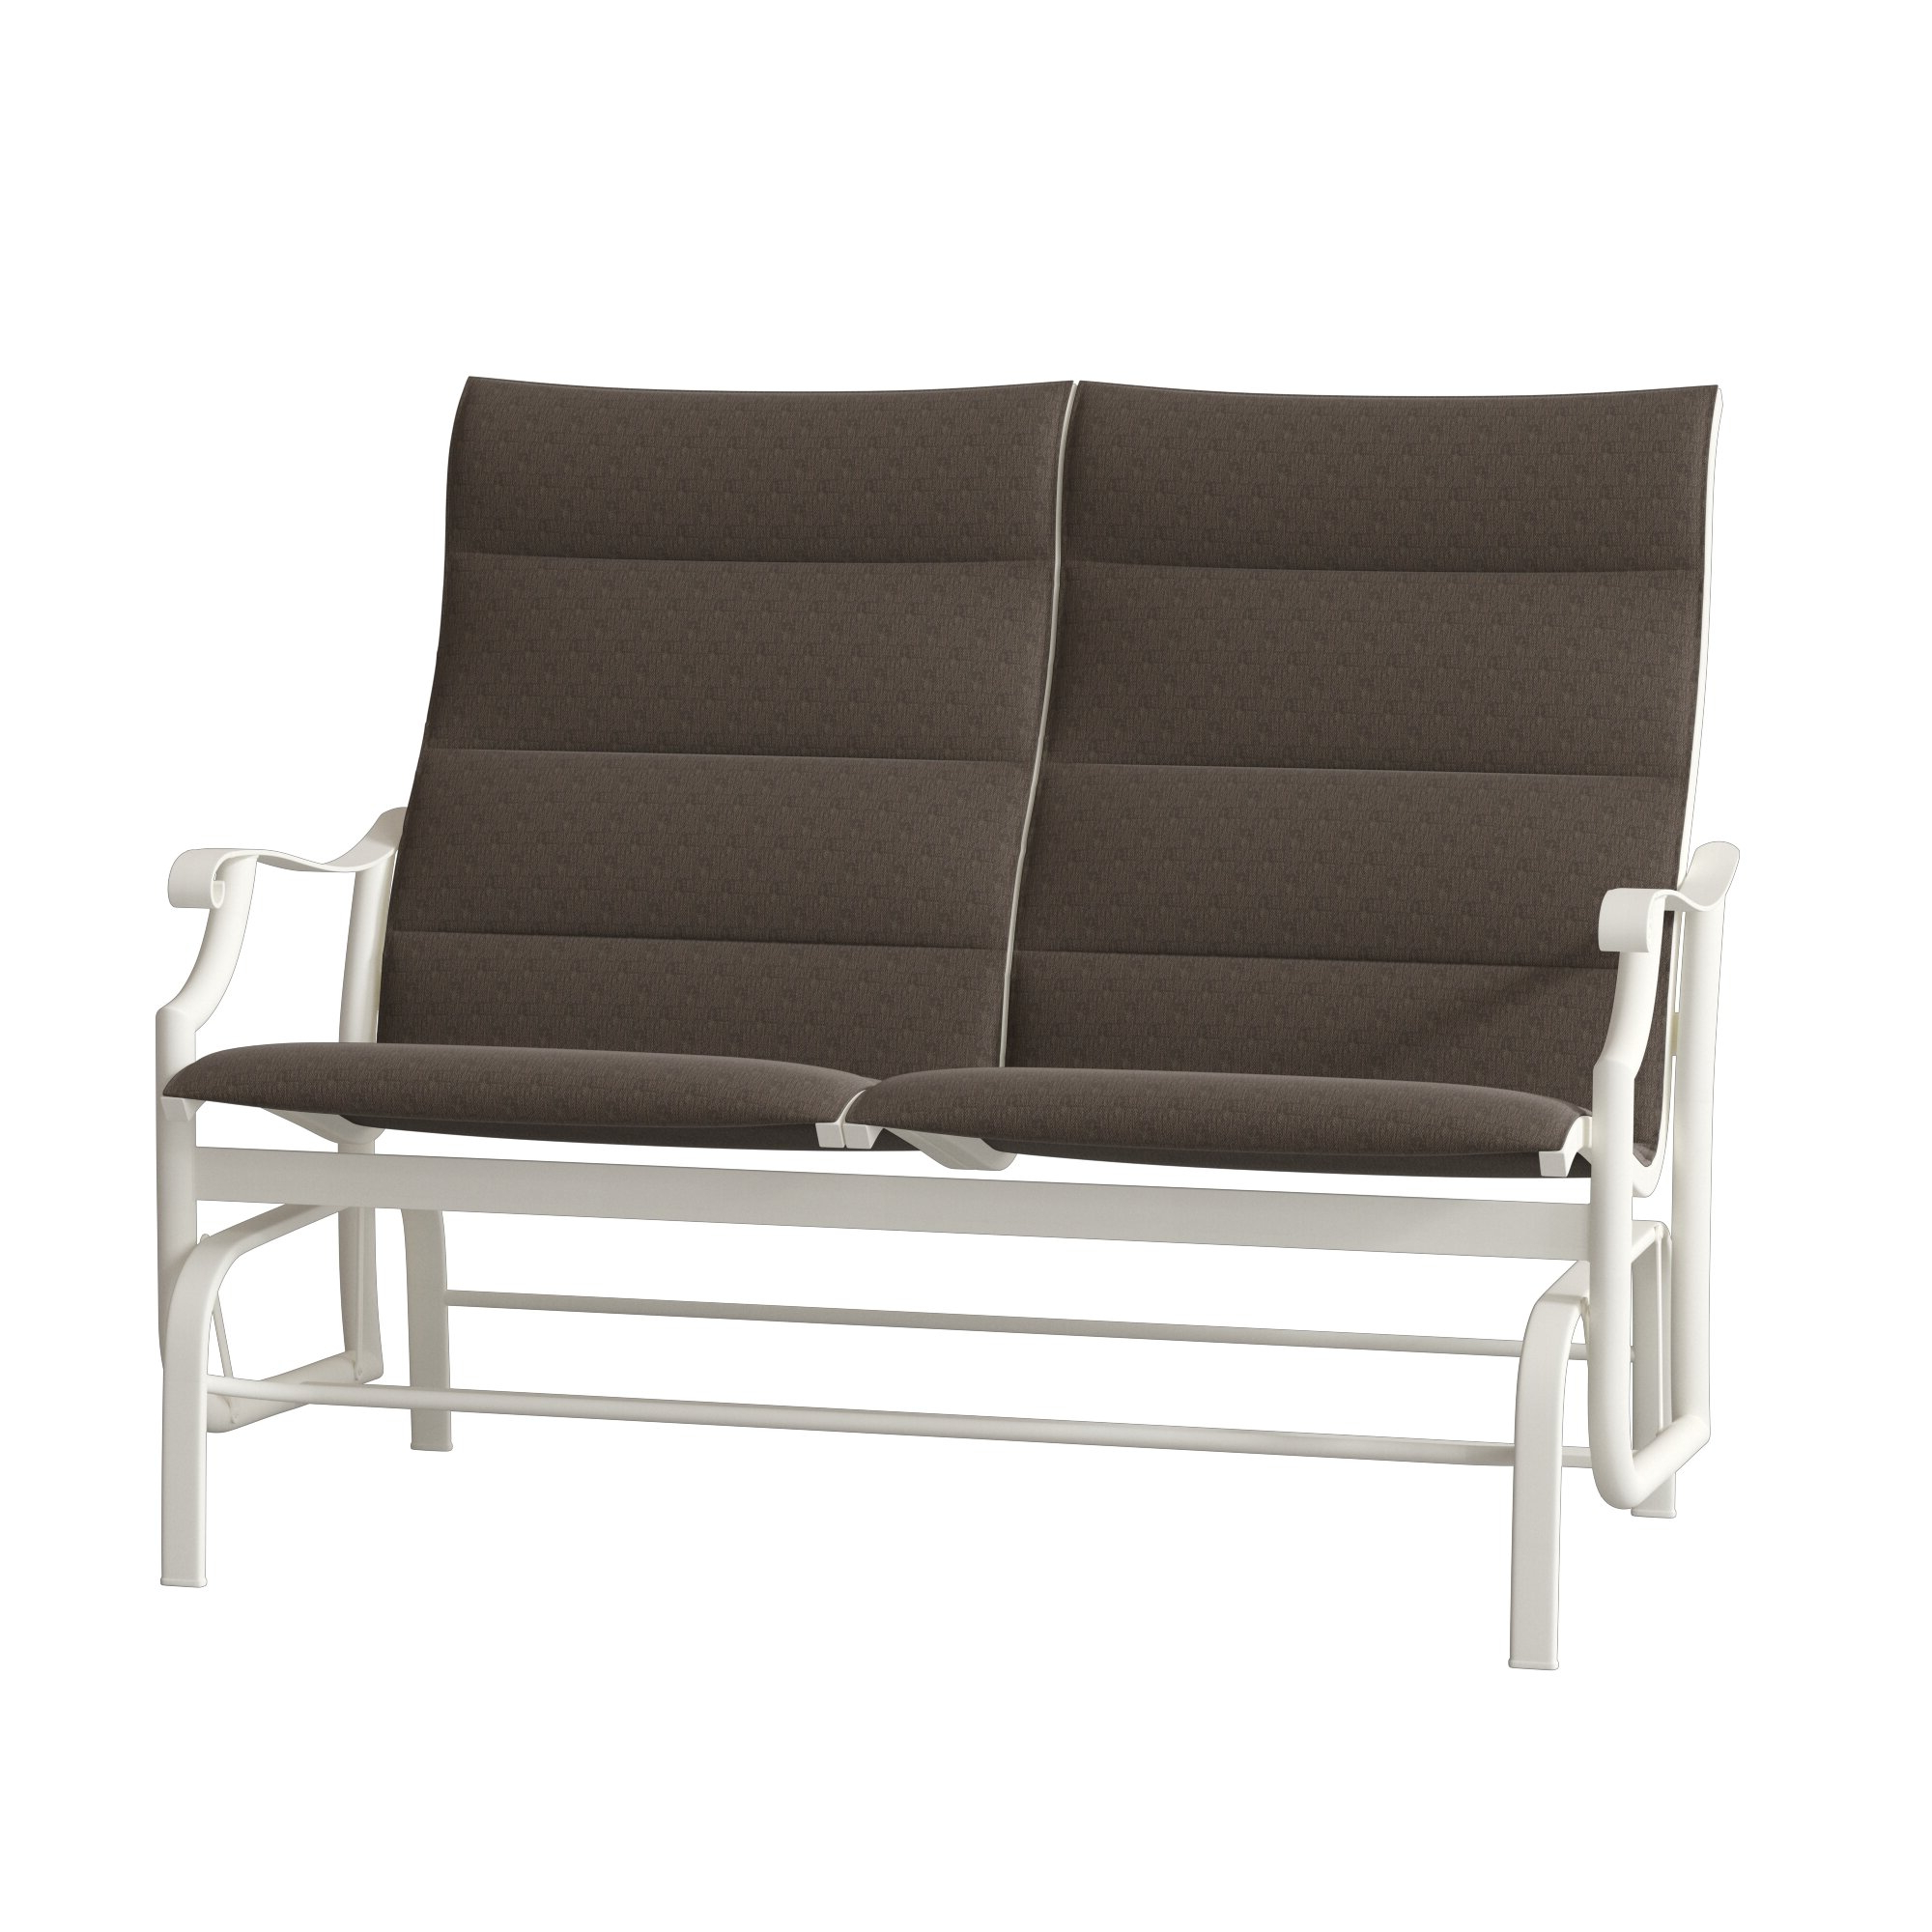 Most Current Montreux Padded Sling Loveseat With Cushions Regarding Padded Sling Loveseats With Cushions (Gallery 1 of 30)